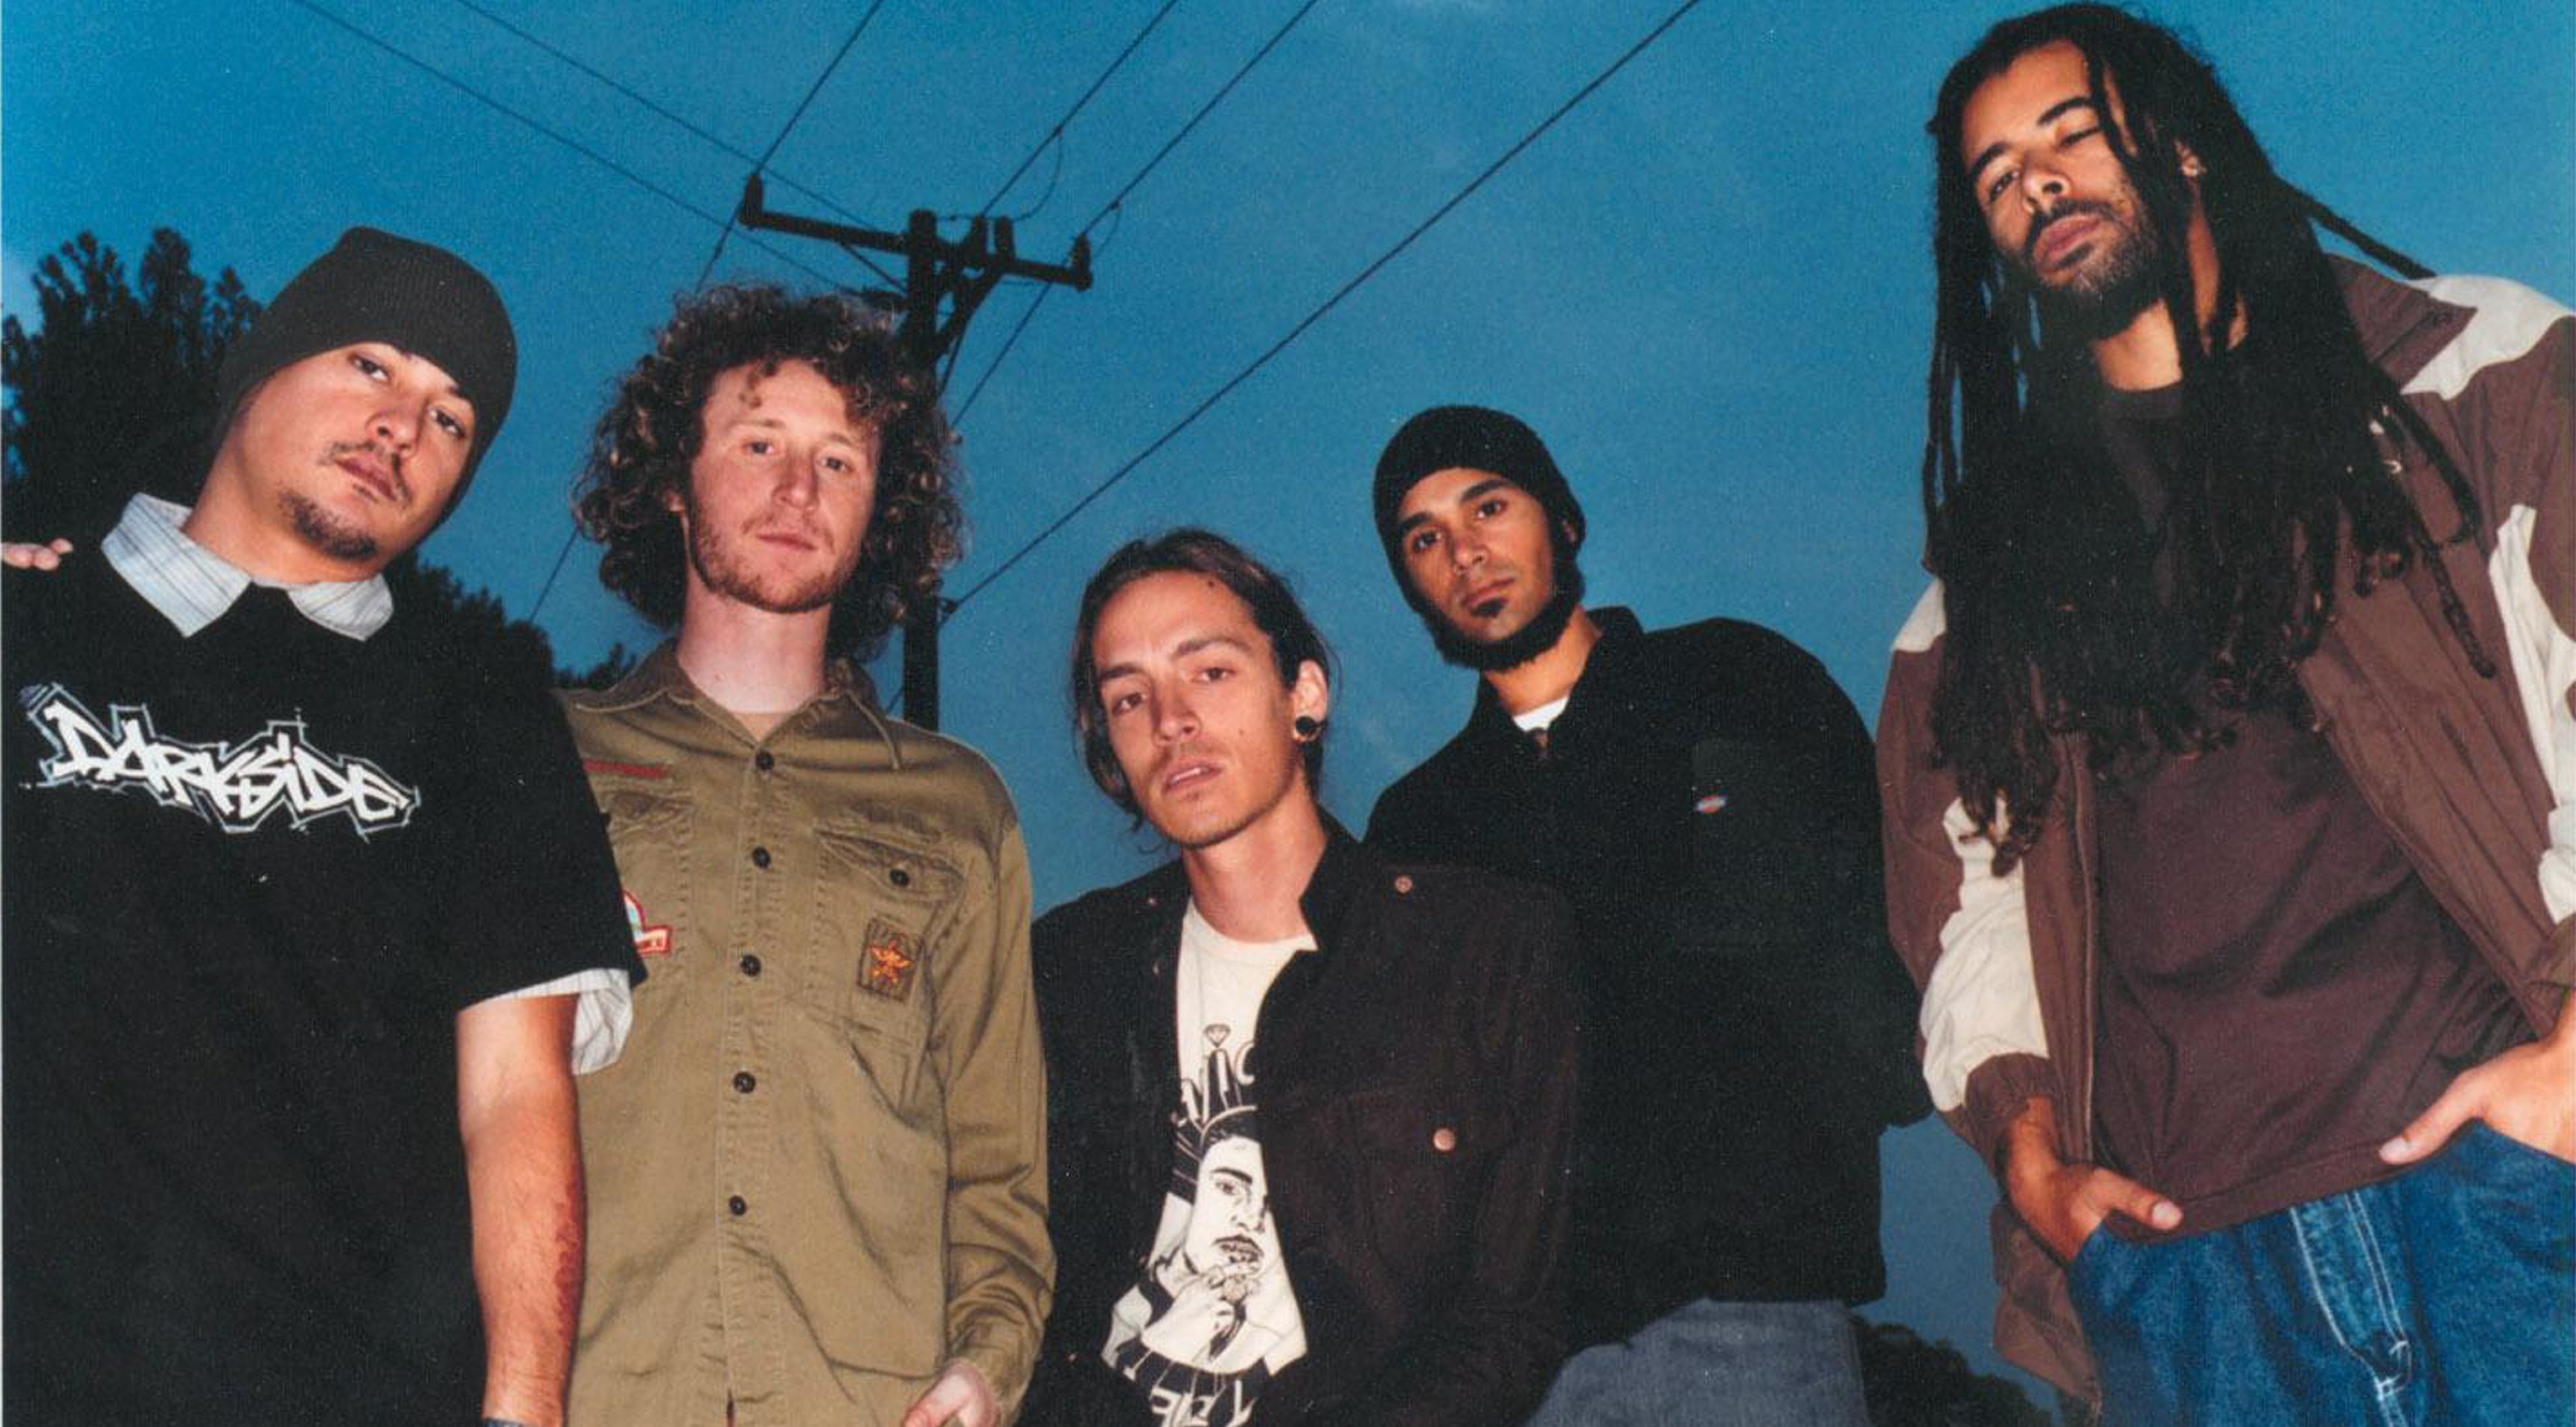 California rock band Incubus, approaching 25 years as a band, will drop by Darien this summer.